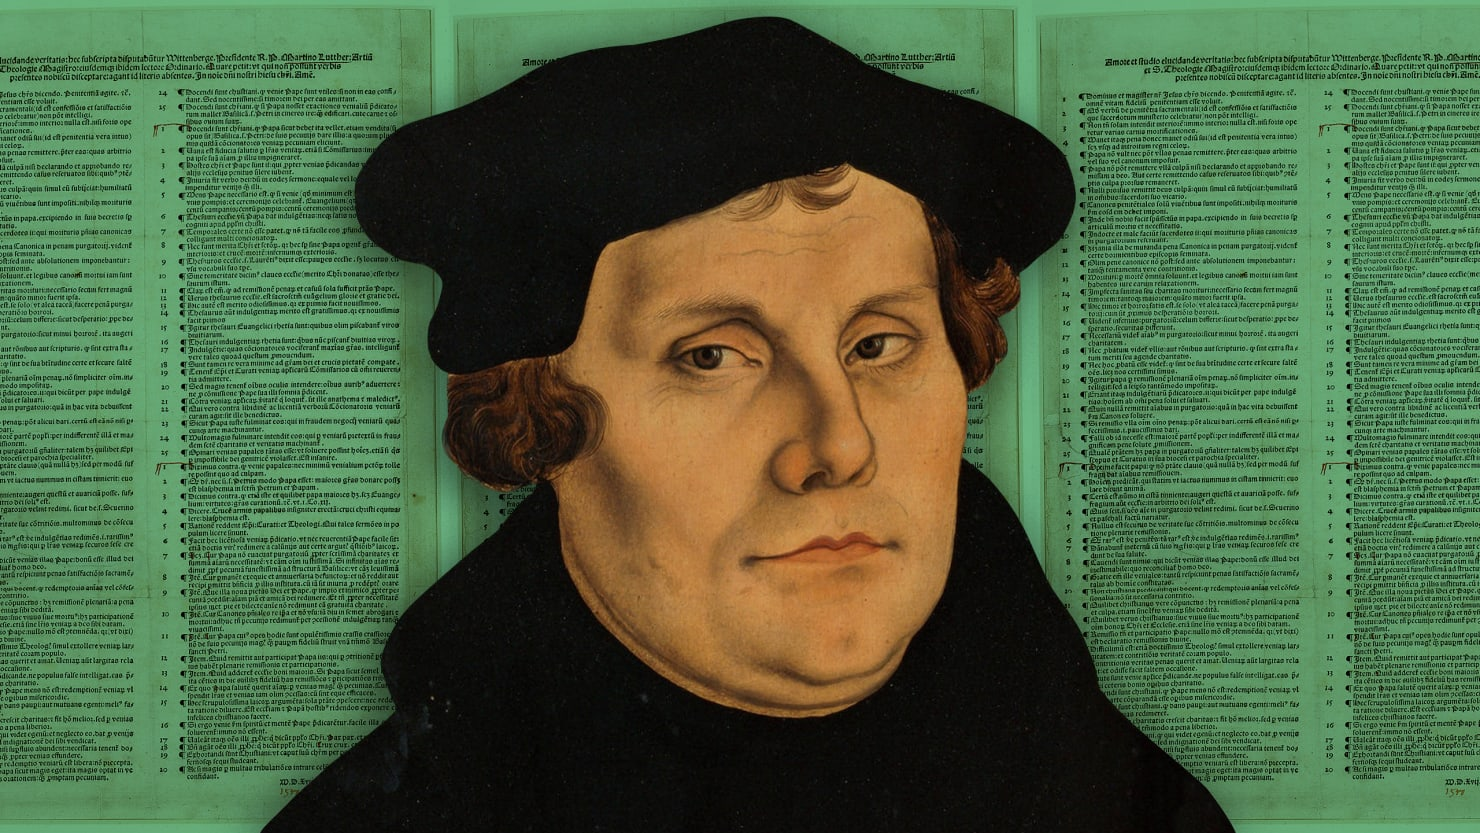 500 Years After Martin Luther Does The Protestant Reformation Still